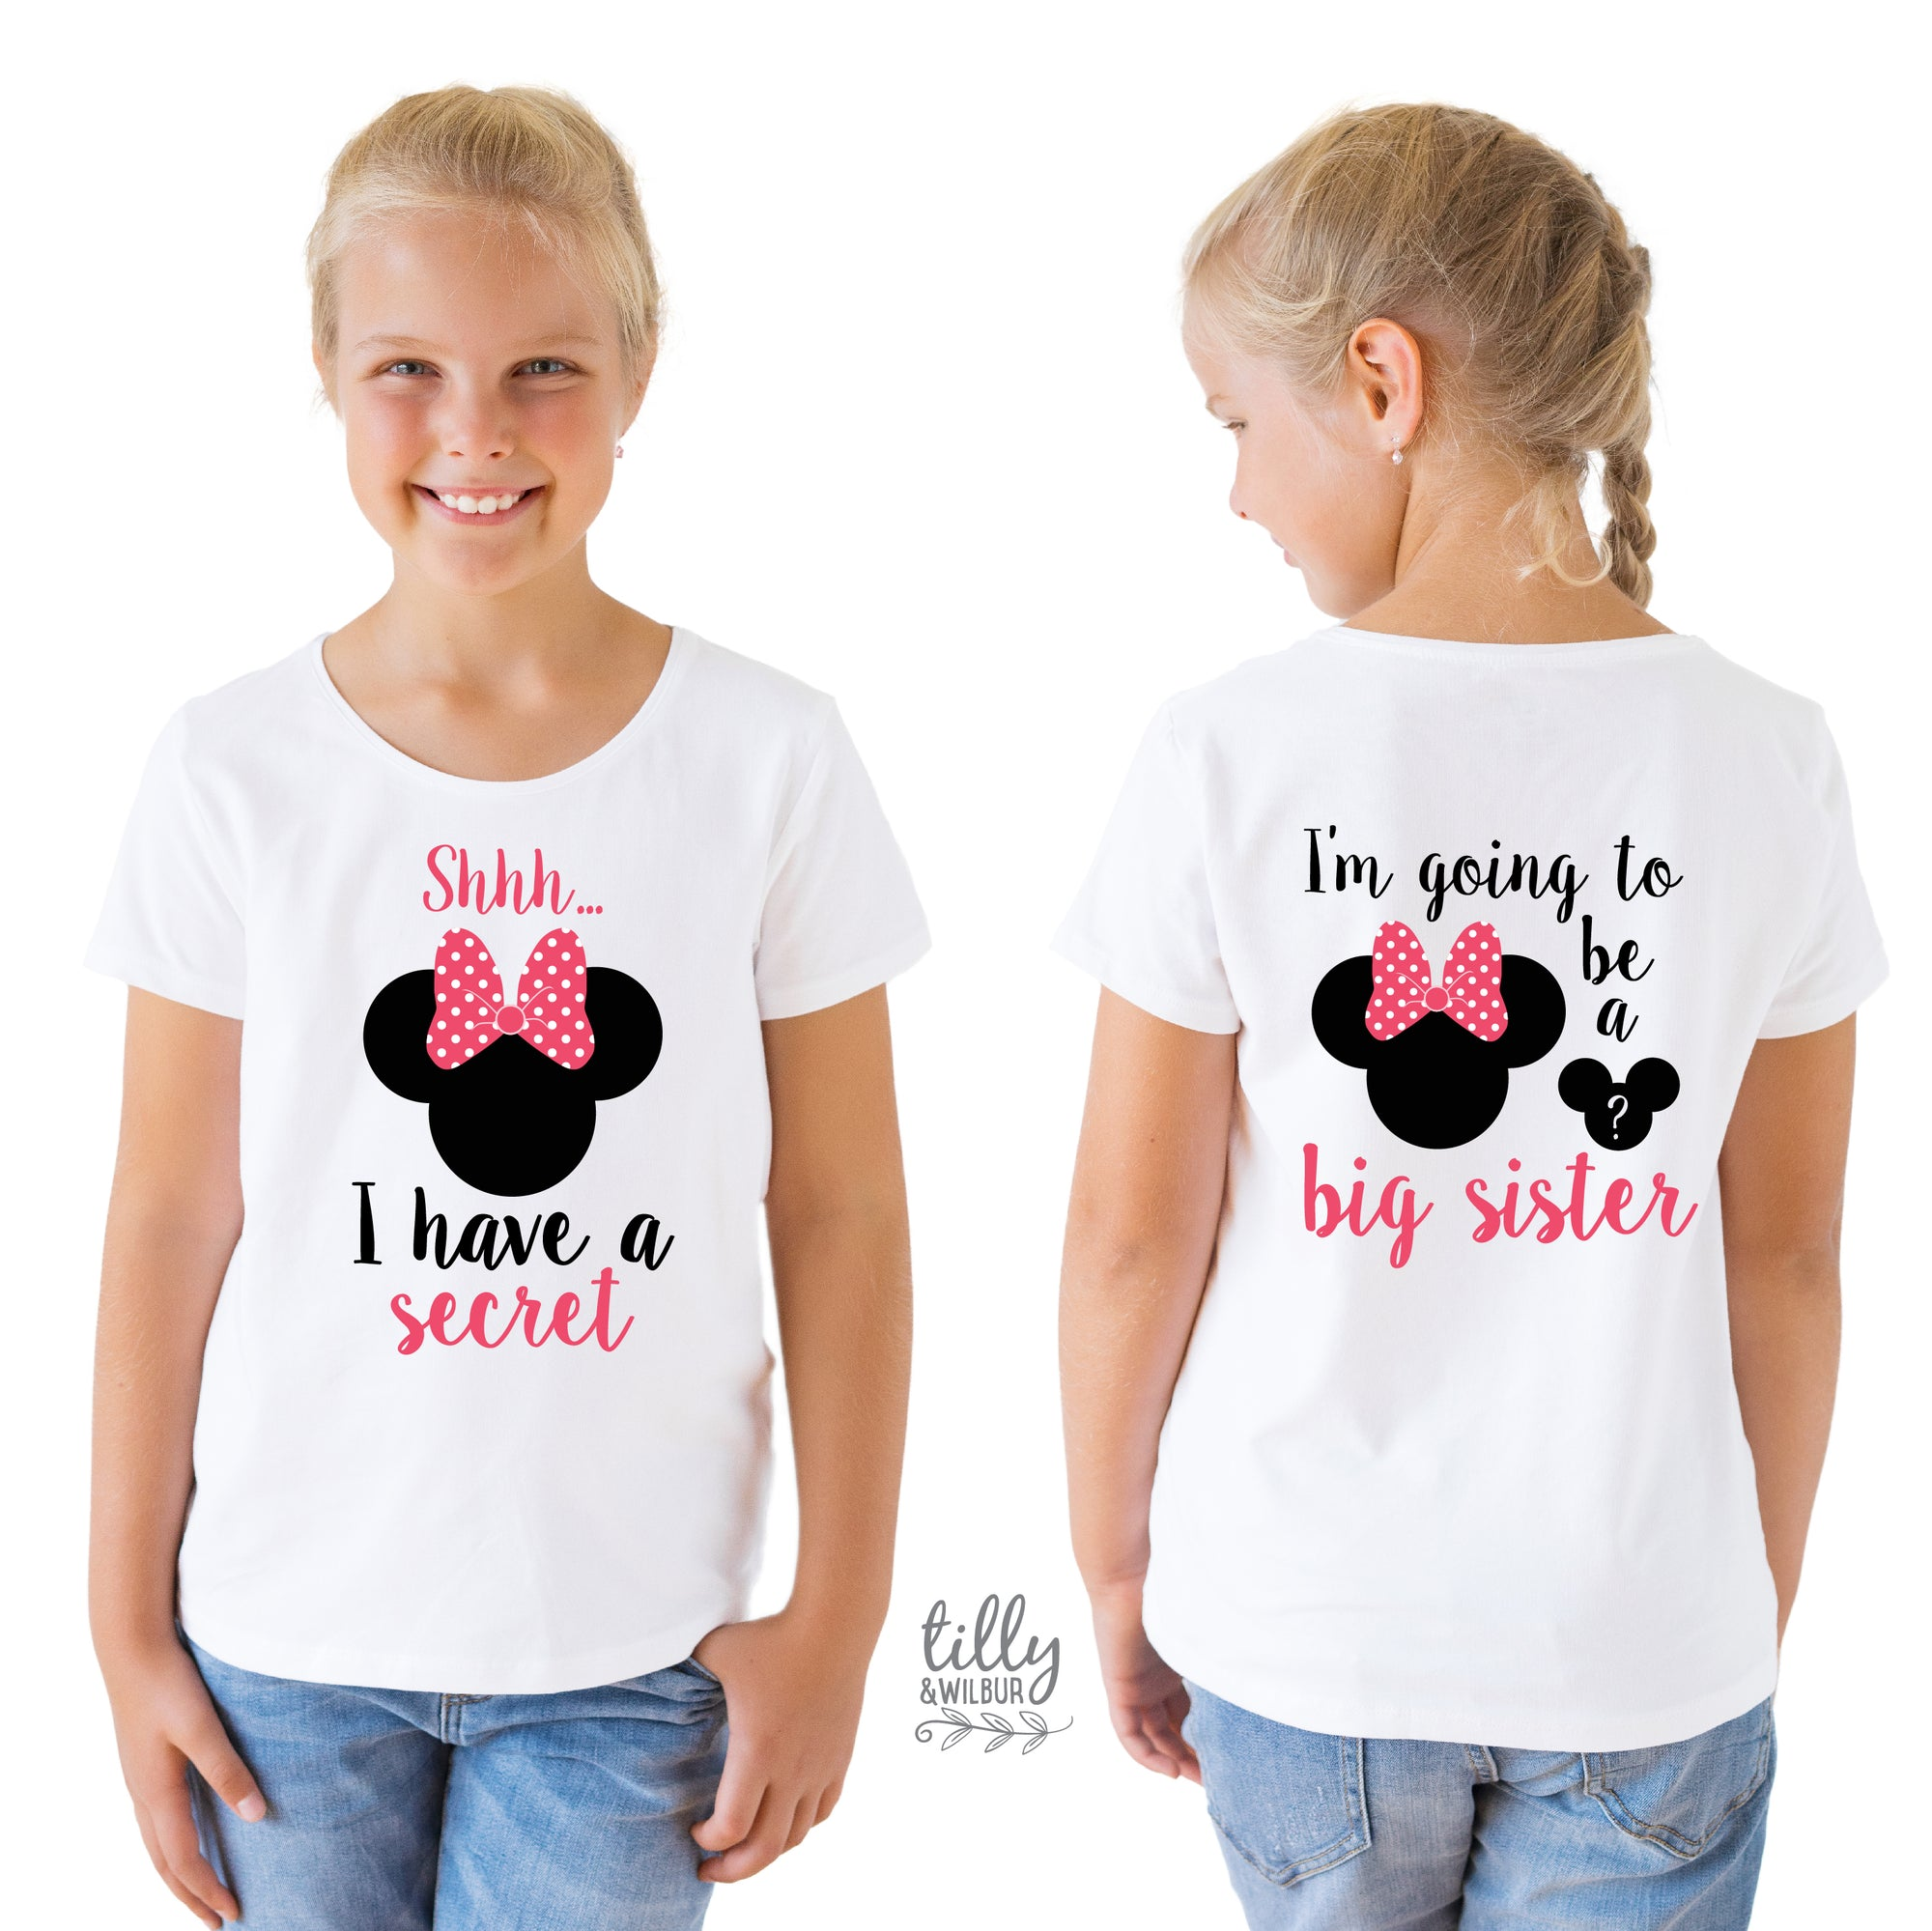 Shhh I Have A Secret, I'm Going To Be A Big Sister T-Shirt for Girls